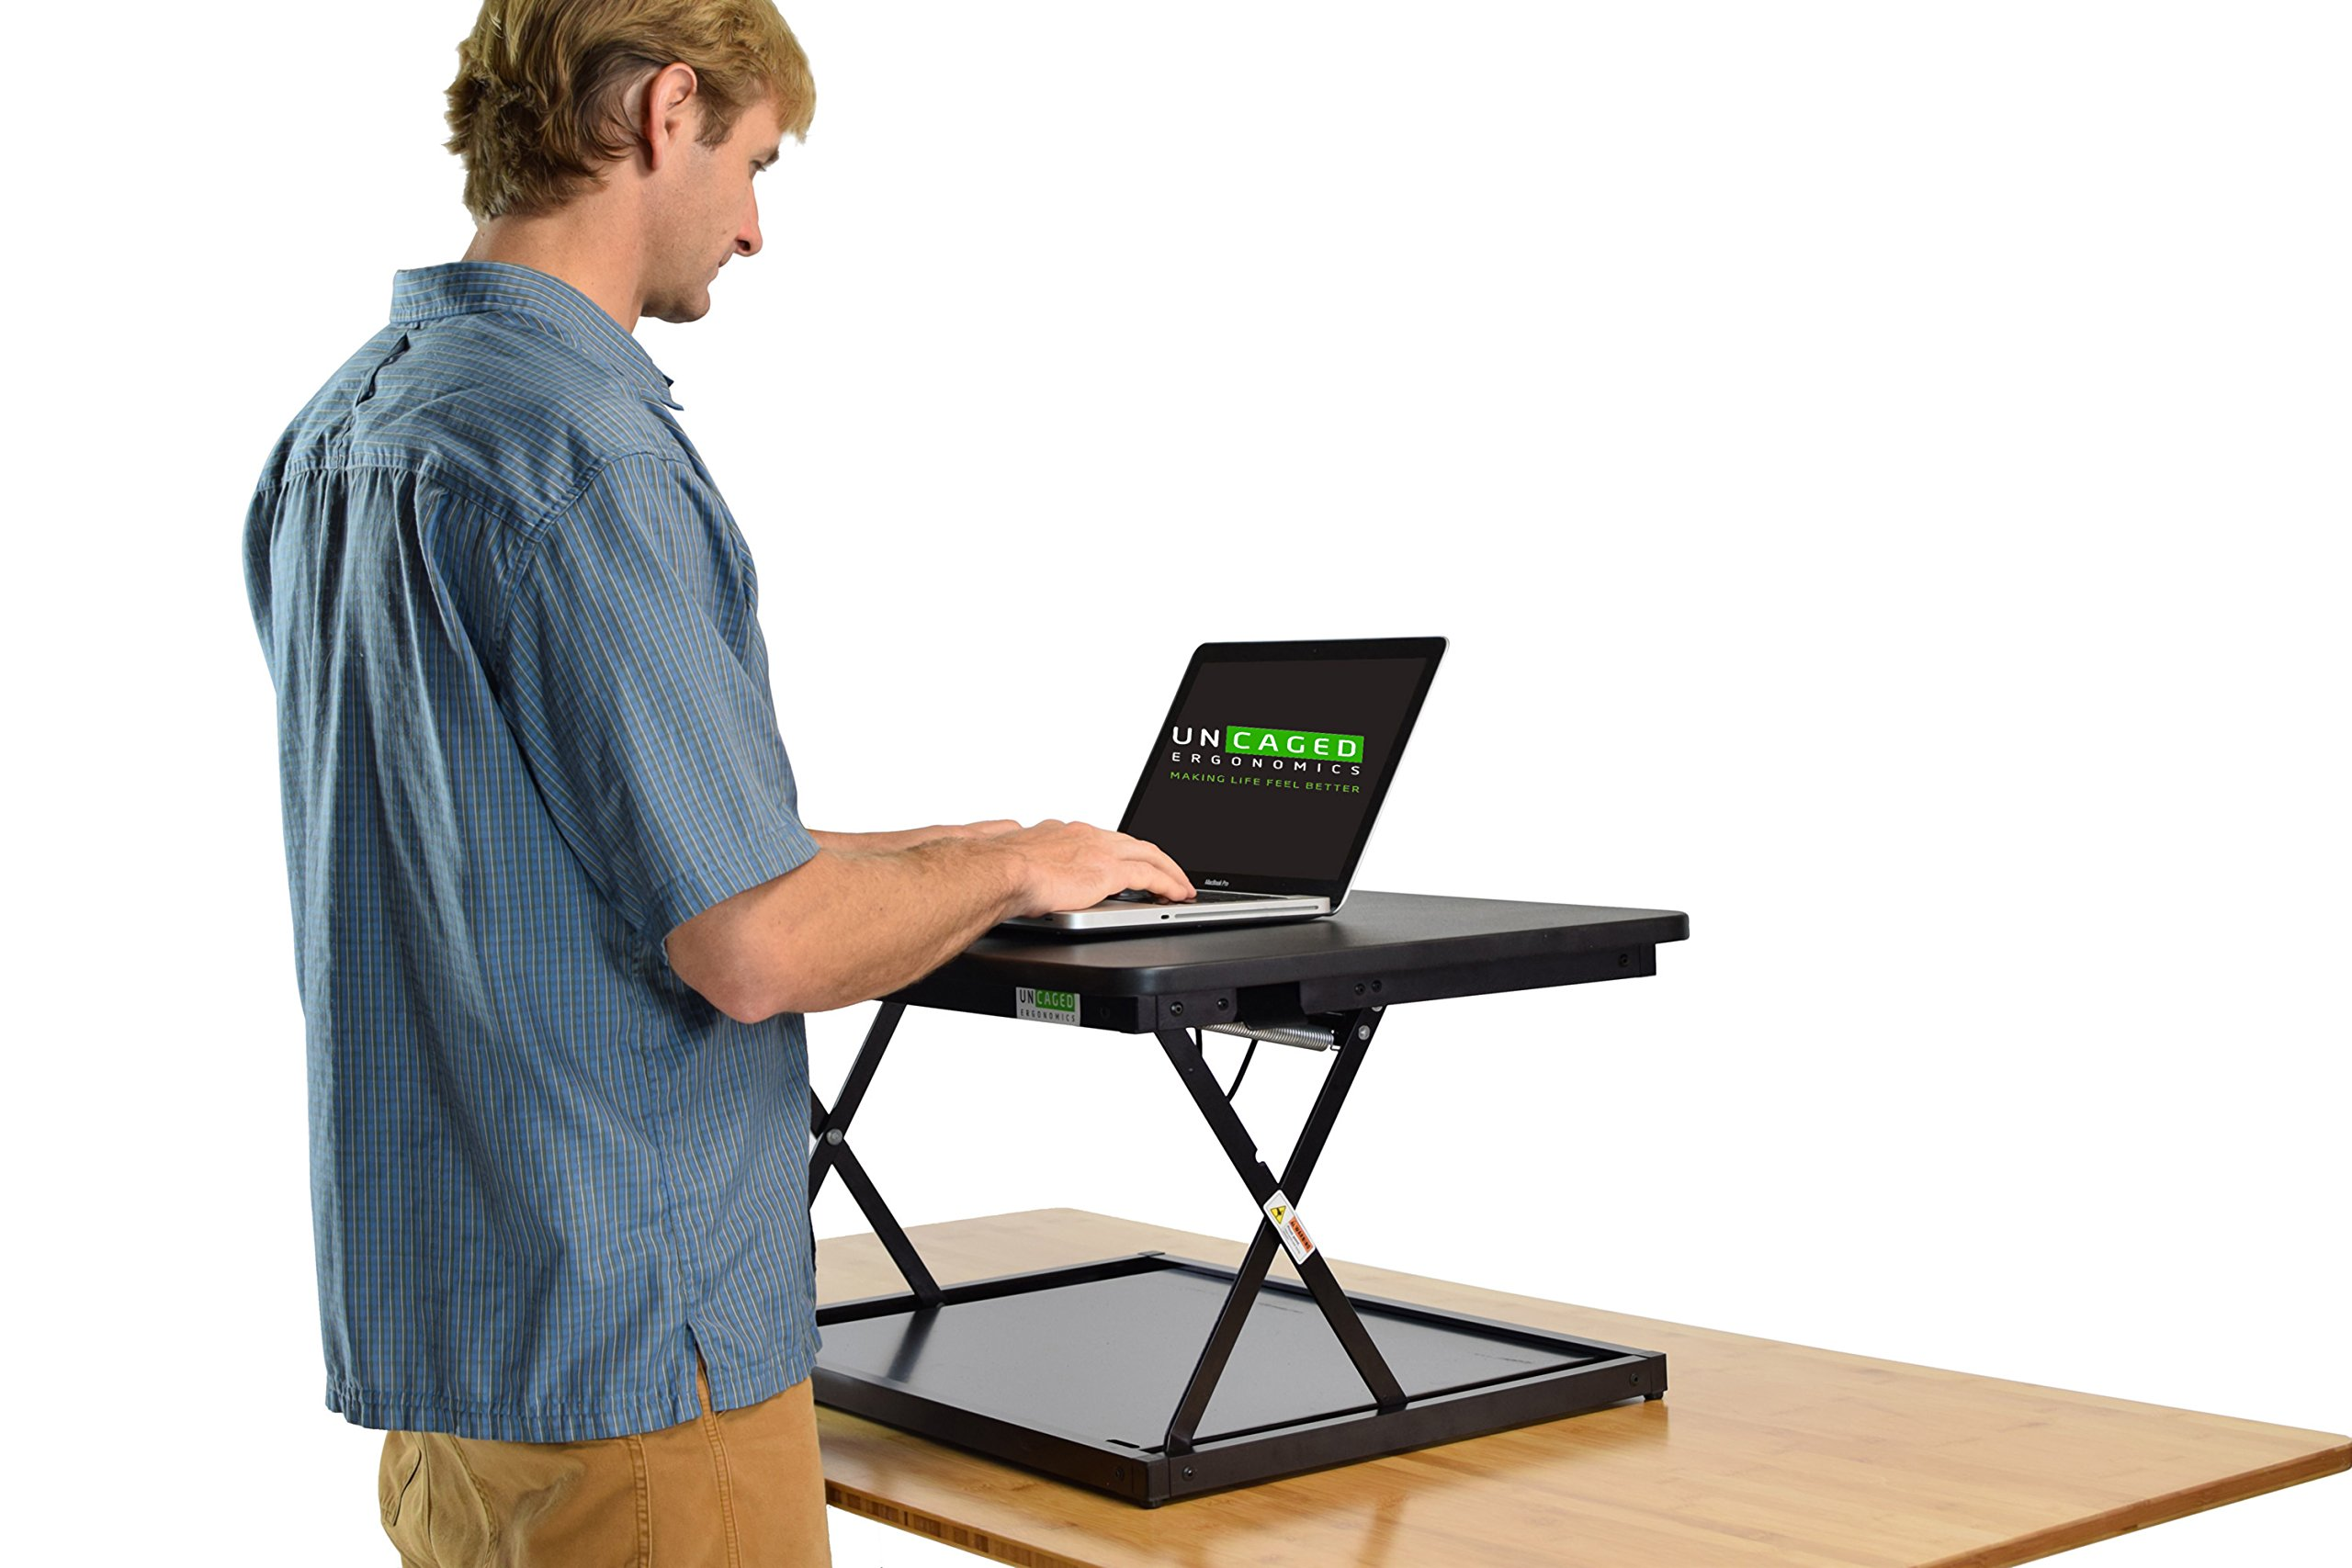 CHANGEdesk Mini Small Adjustable Height Standing Desk Converter for Laptop MacBook Single Monitor Desktop Computer Portable Lightweight Ergonomic sit Stand up Corner Riser Affordable Compact Tabletop by Uncaged Ergonomics (Image #7)